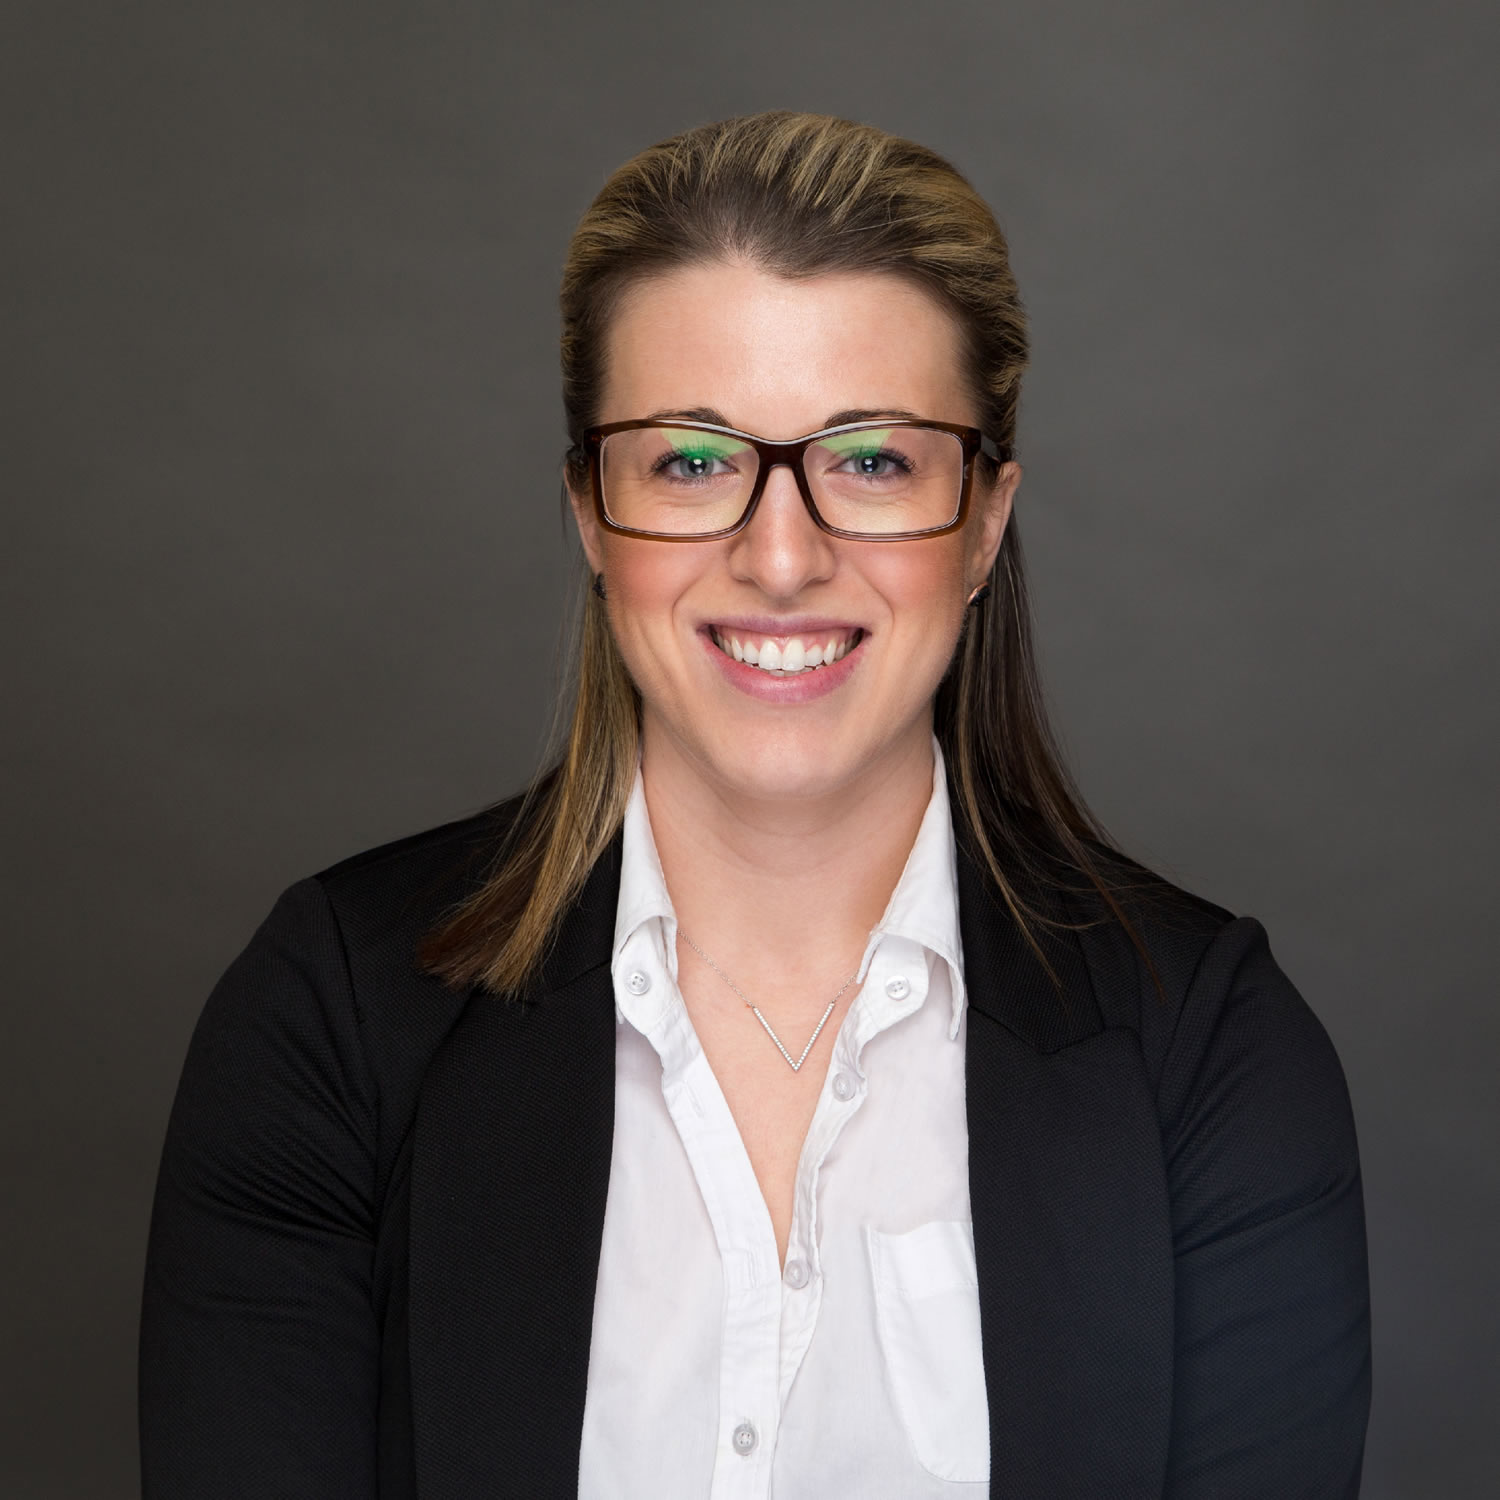 Kelly Hall, MBA CANDIDATE